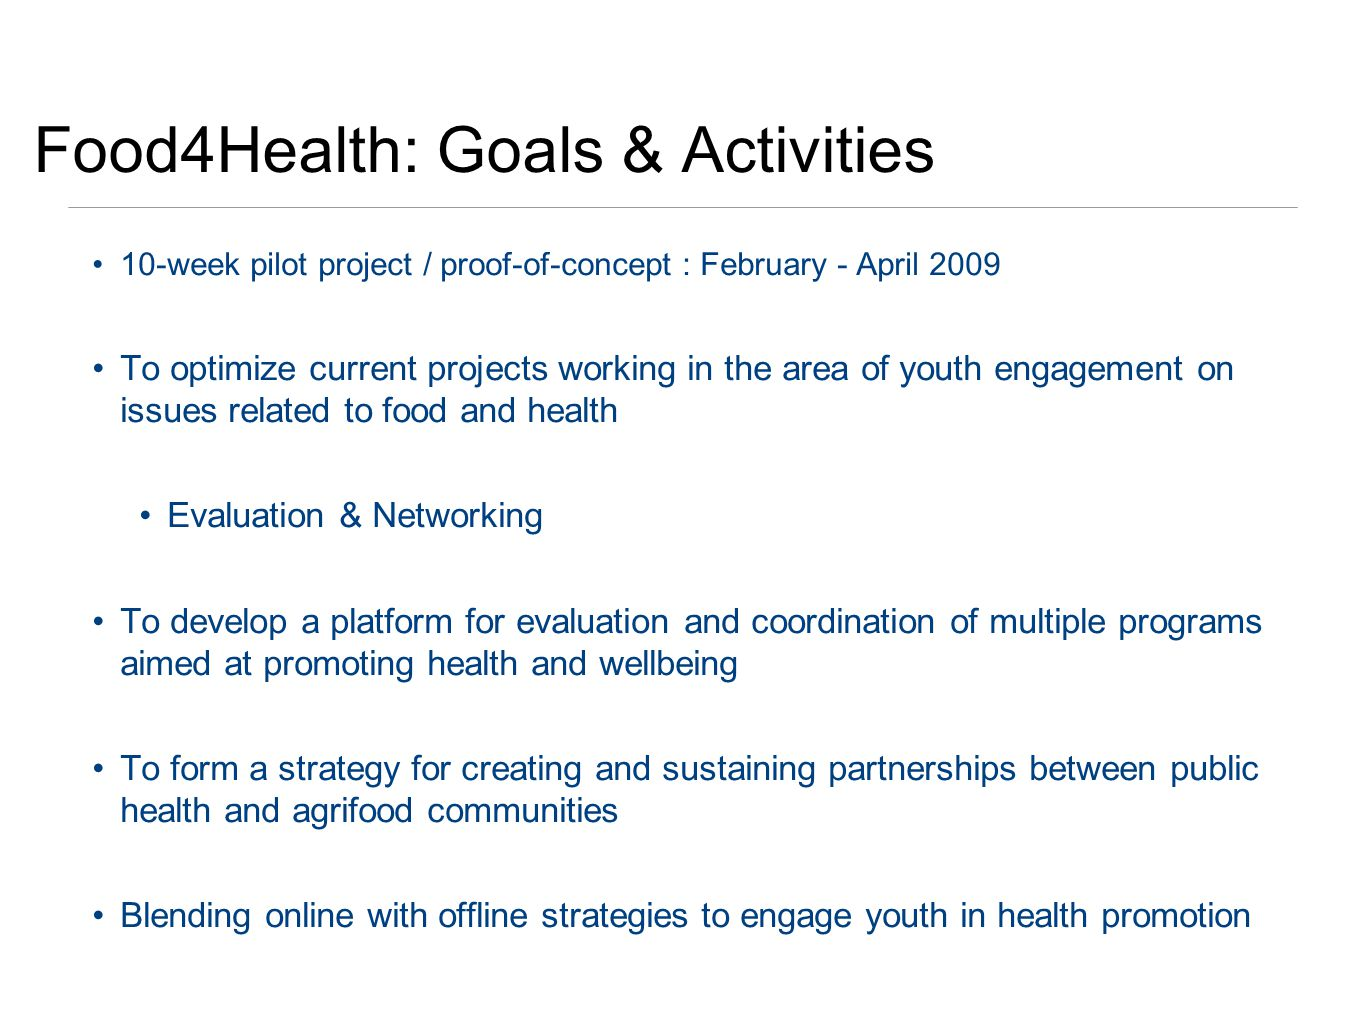 Food4Health: Goals & Activities 10-week pilot project / proof-of-concept : February - April 2009 To optimize current projects working in the area of youth engagement on issues related to food and health Evaluation & Networking To develop a platform for evaluation and coordination of multiple programs aimed at promoting health and wellbeing To form a strategy for creating and sustaining partnerships between public health and agrifood communities Blending online with offline strategies to engage youth in health promotion